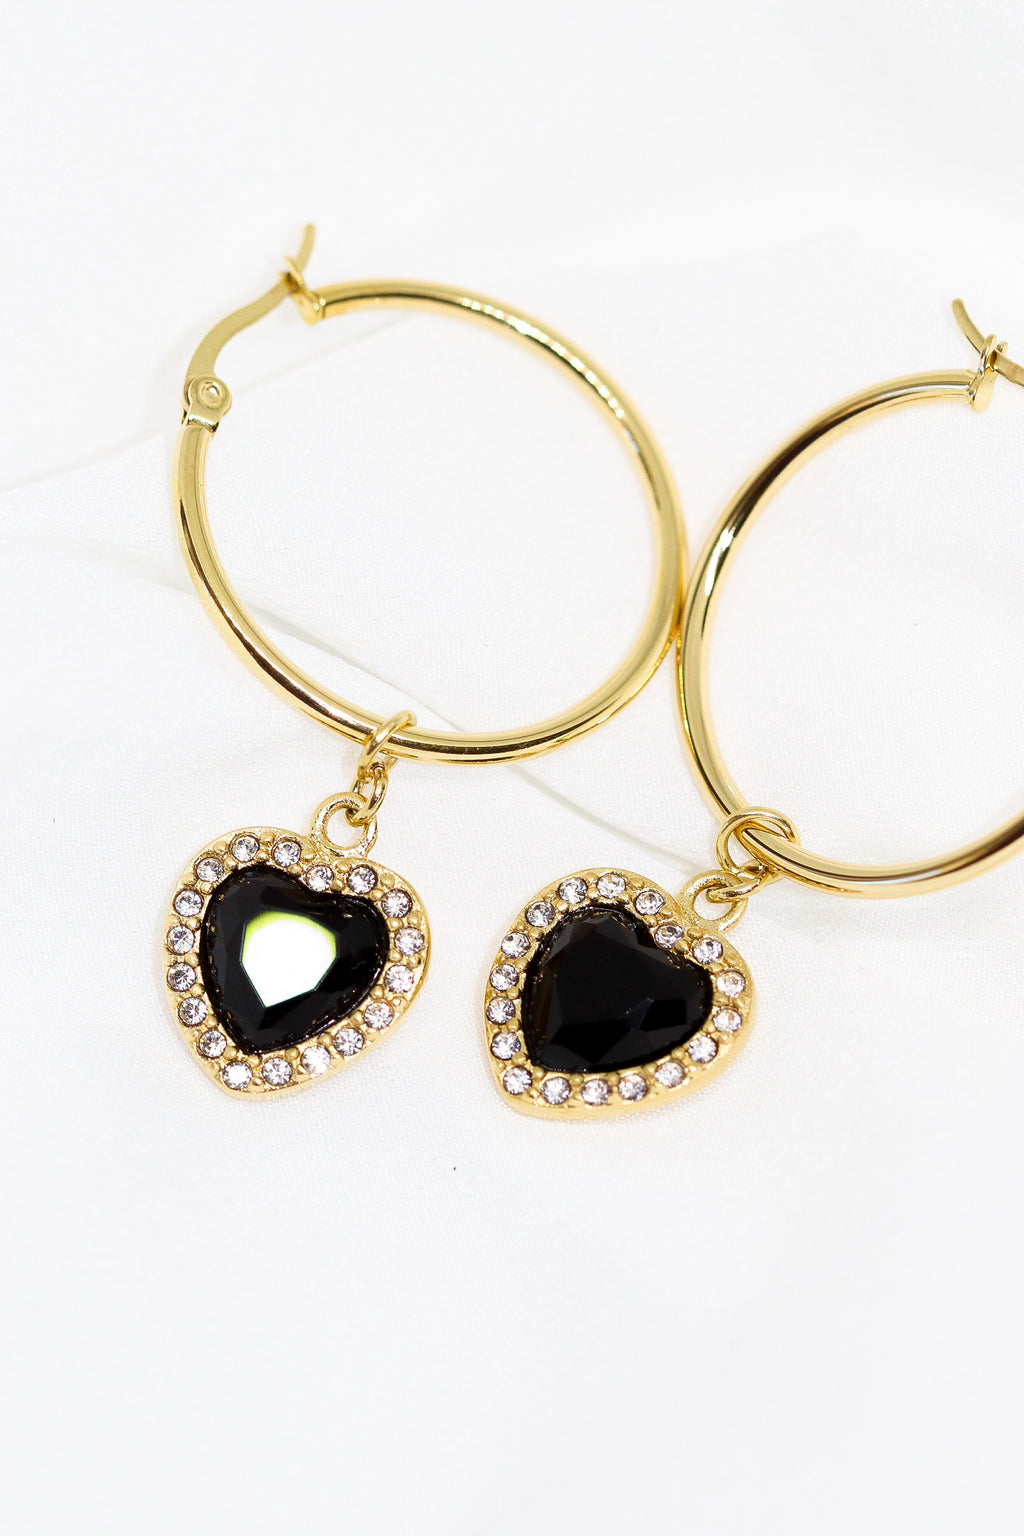 90s SWEETHEART HOOPS - Taimana Boutique